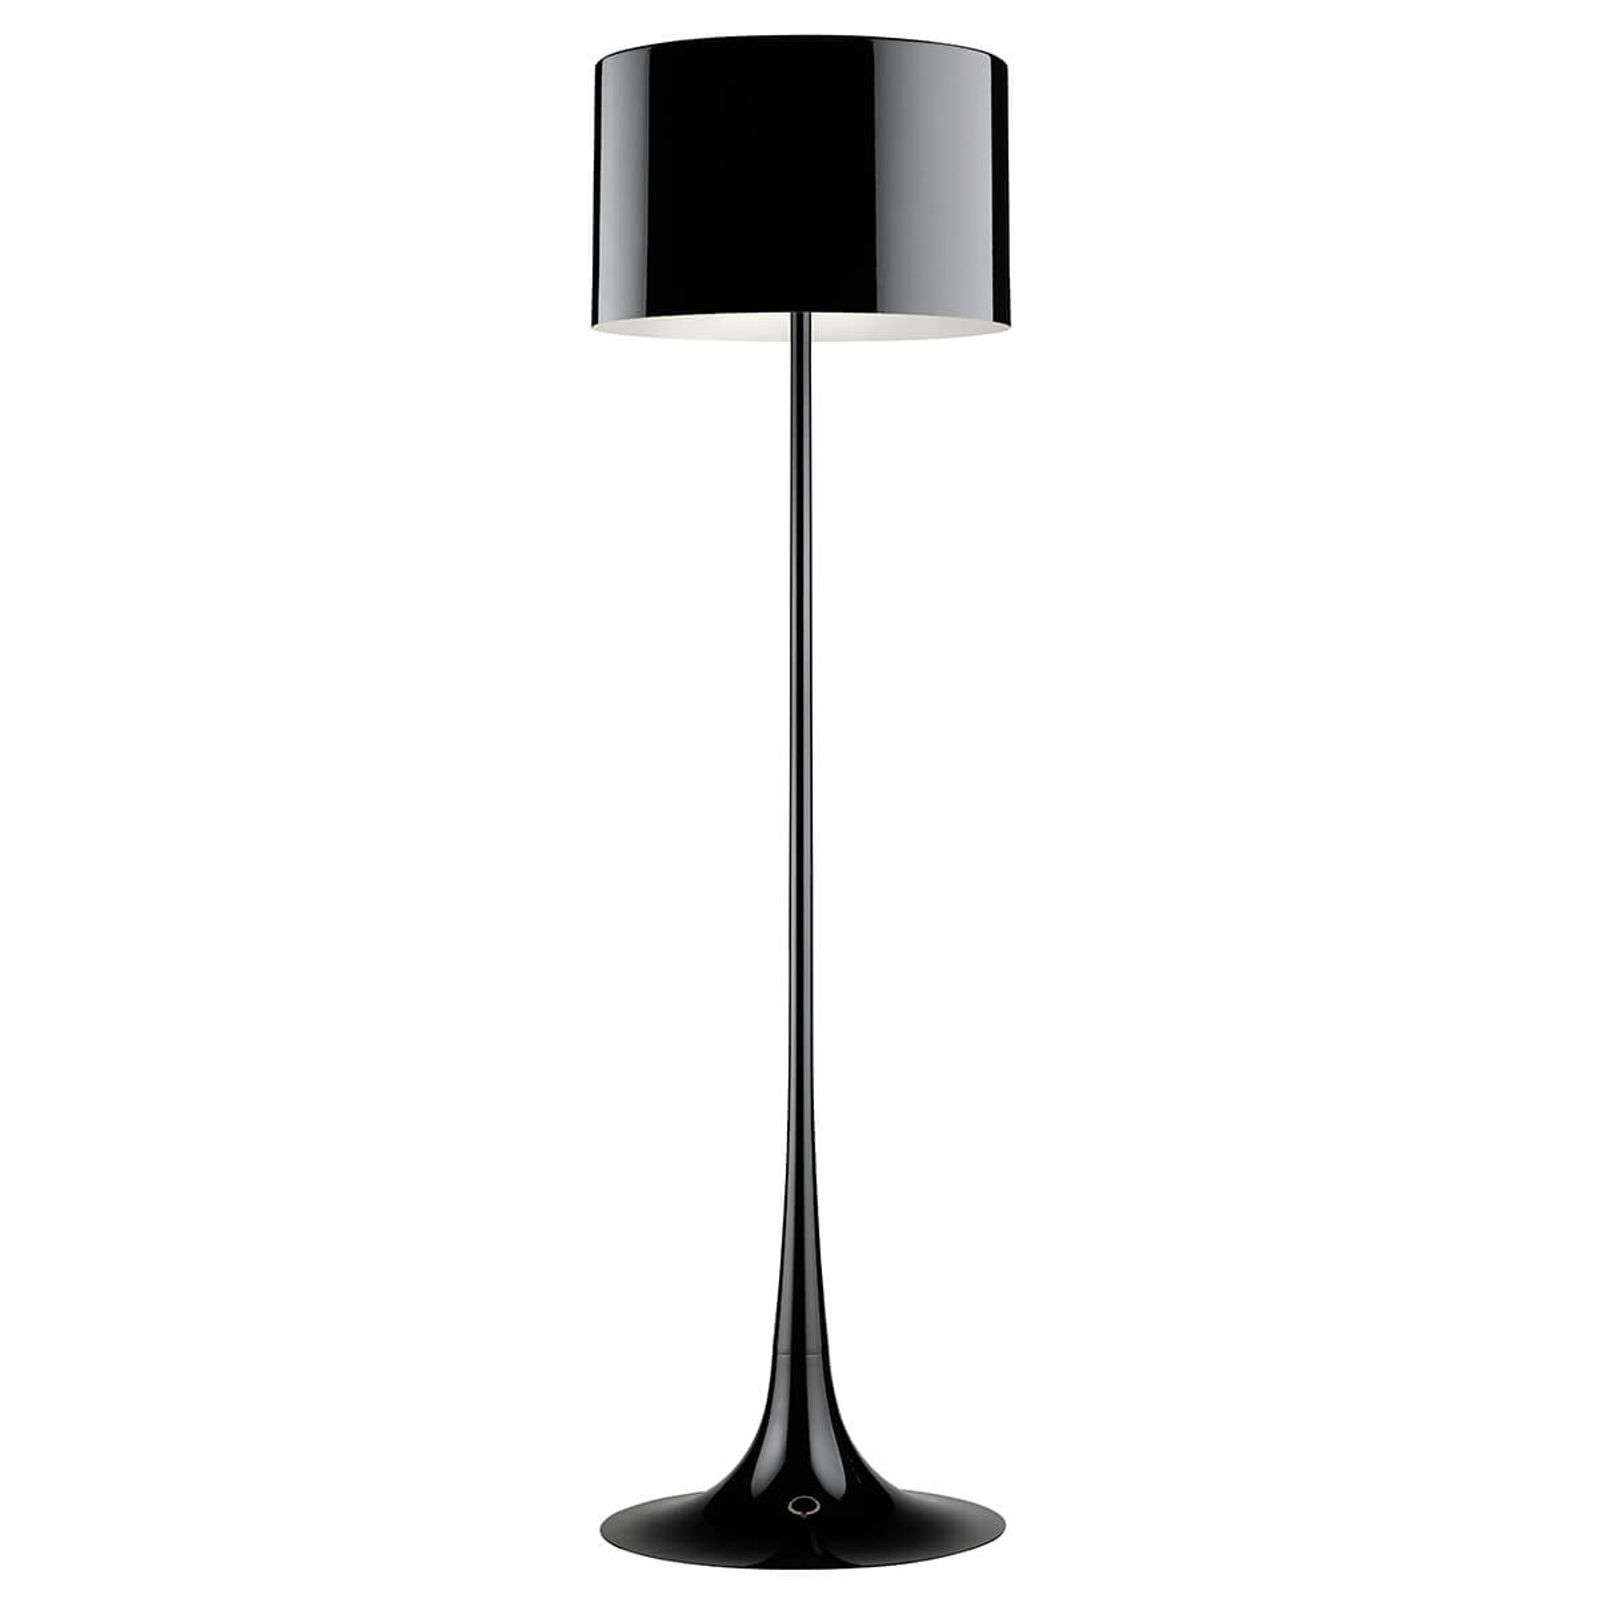 Lampadaire Spun Light F by FLOS noir